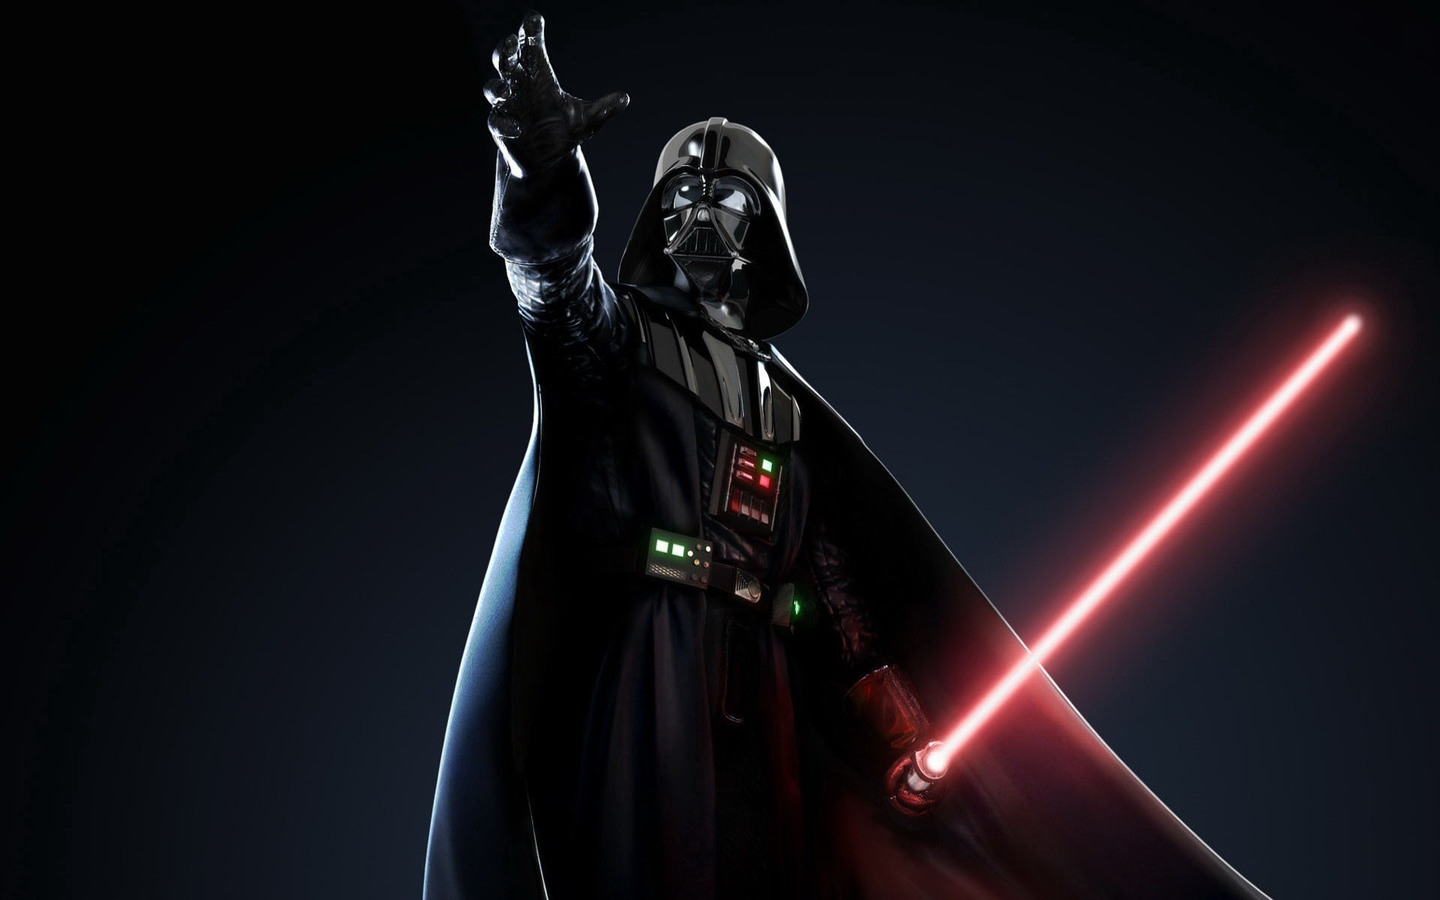 1440x900 darth vader 1440x900 resolution hd 4k wallpapers, images